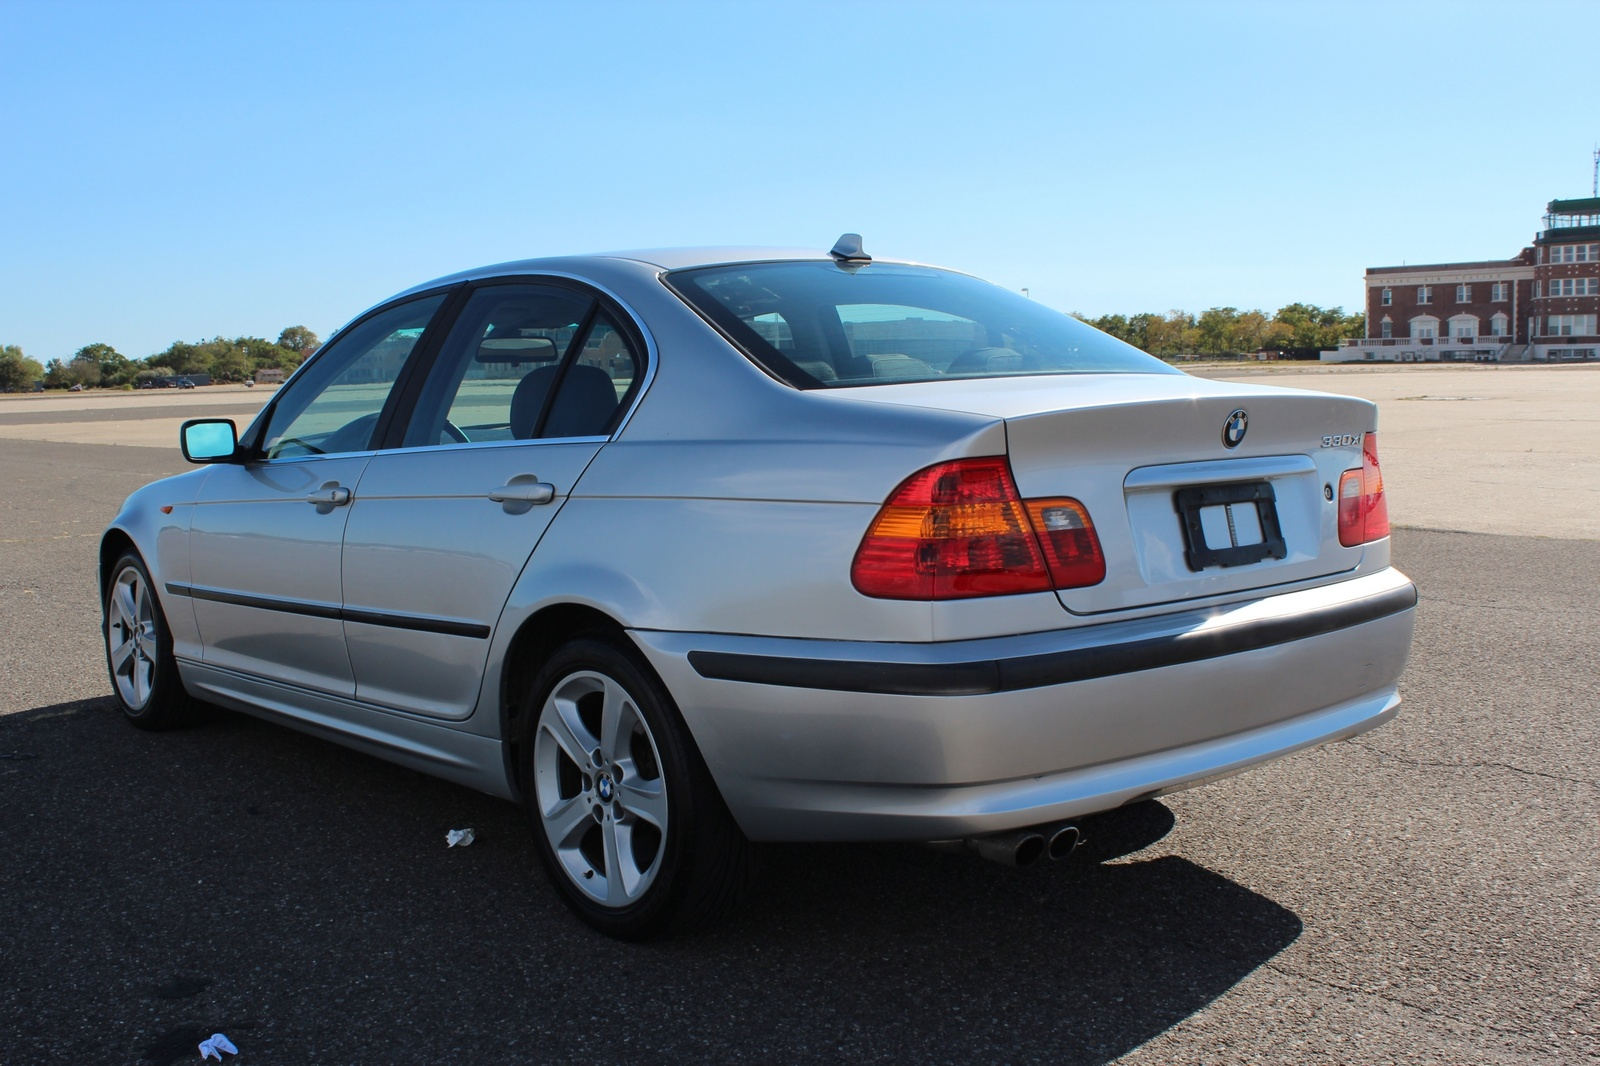 BMW 3 series 335xi 2004 photo - 5